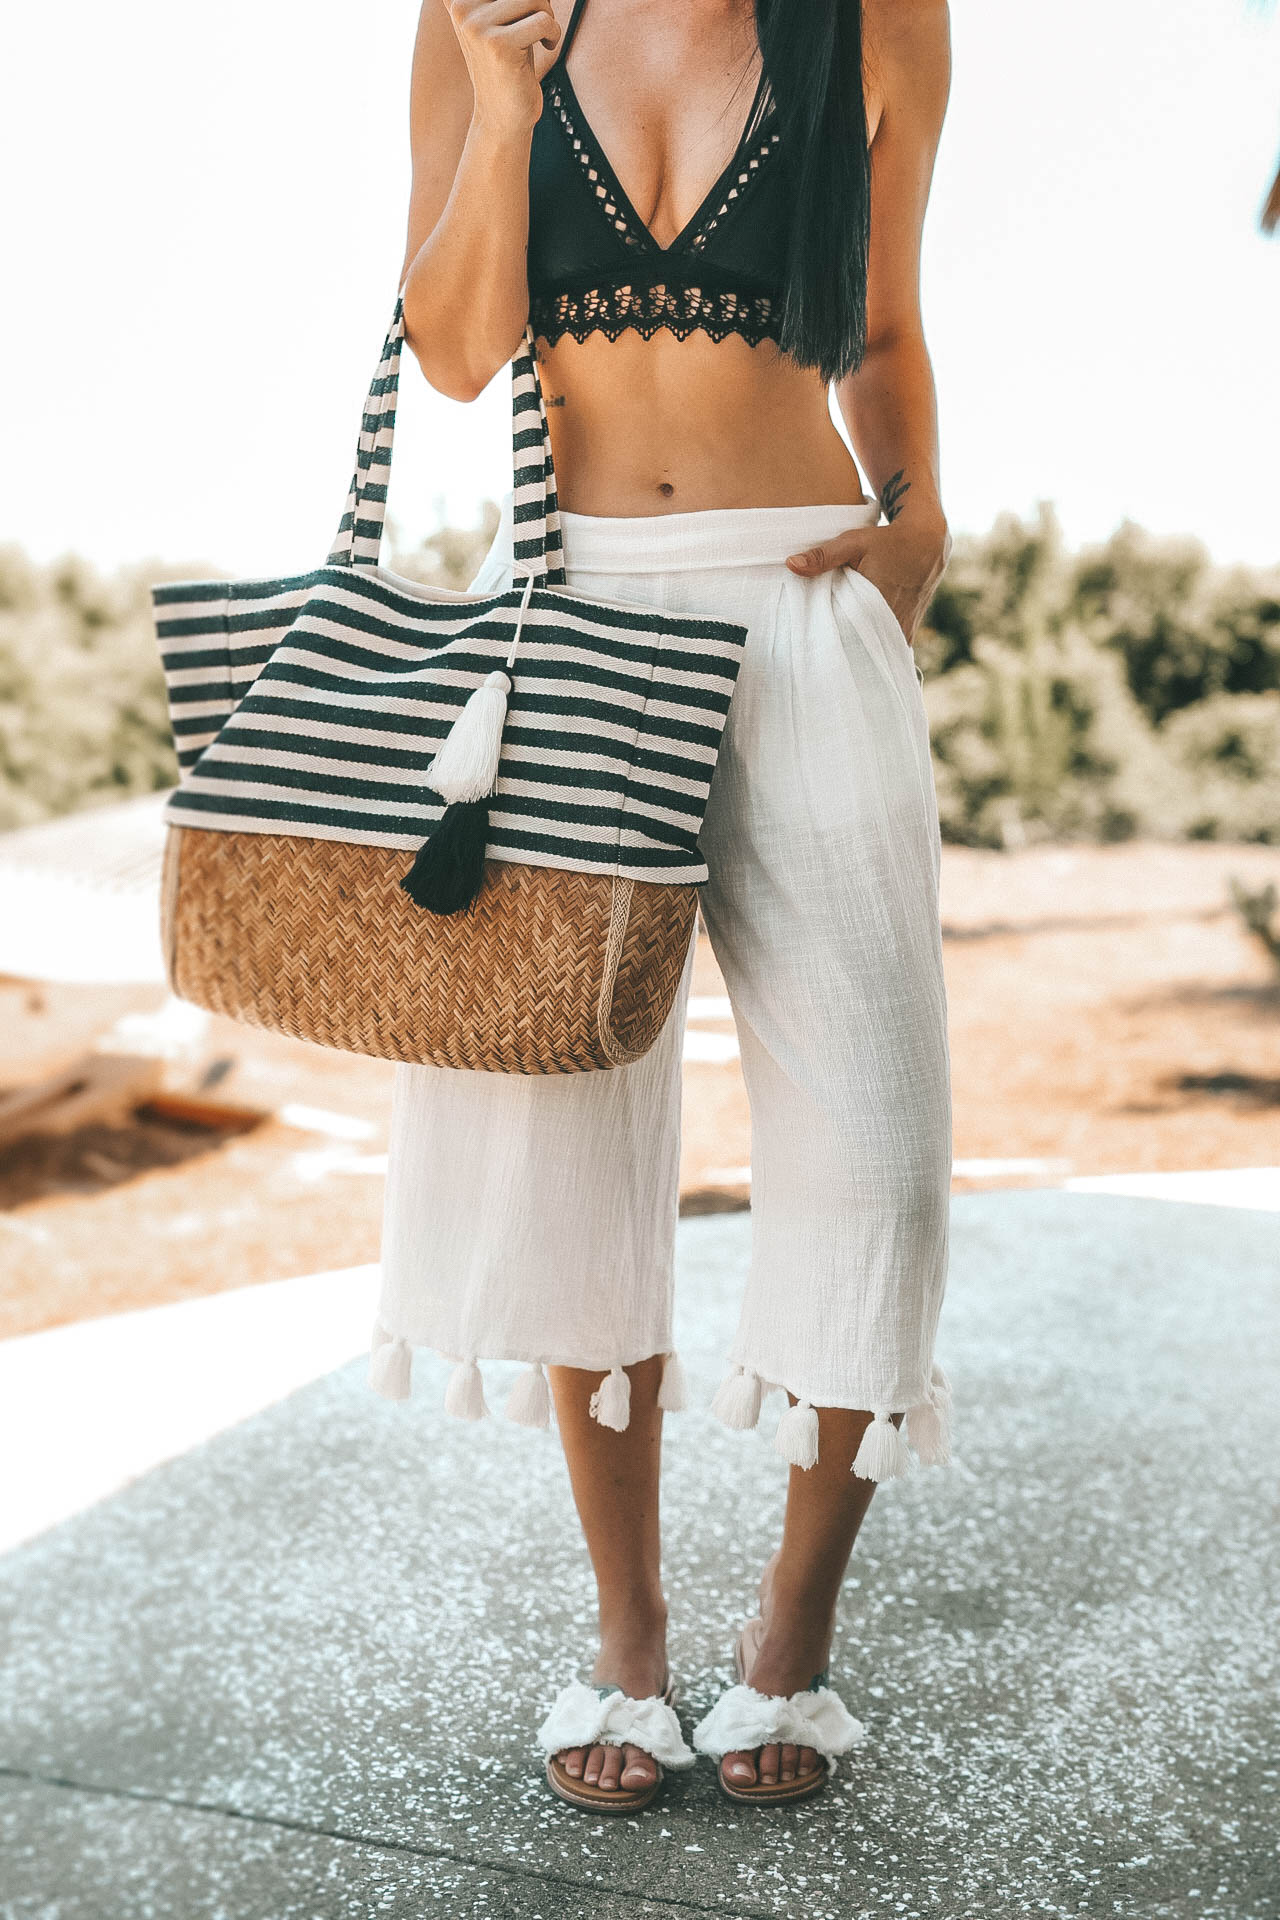 how to look cute yet comfortable for a beach vacation. | Resort Wear for Fall | What to wear to the beach | Black lace bikini | Target Bikini || Dressed to Kill #fashion #style #womensoutfit #womensfashion #bikini #resortwear #summerstyle #beachoutfit #fallfashion #dtkaustin | Beach Fashion: How to Look Put Together featured by popular Austin fashion blogger Dressed to Kill